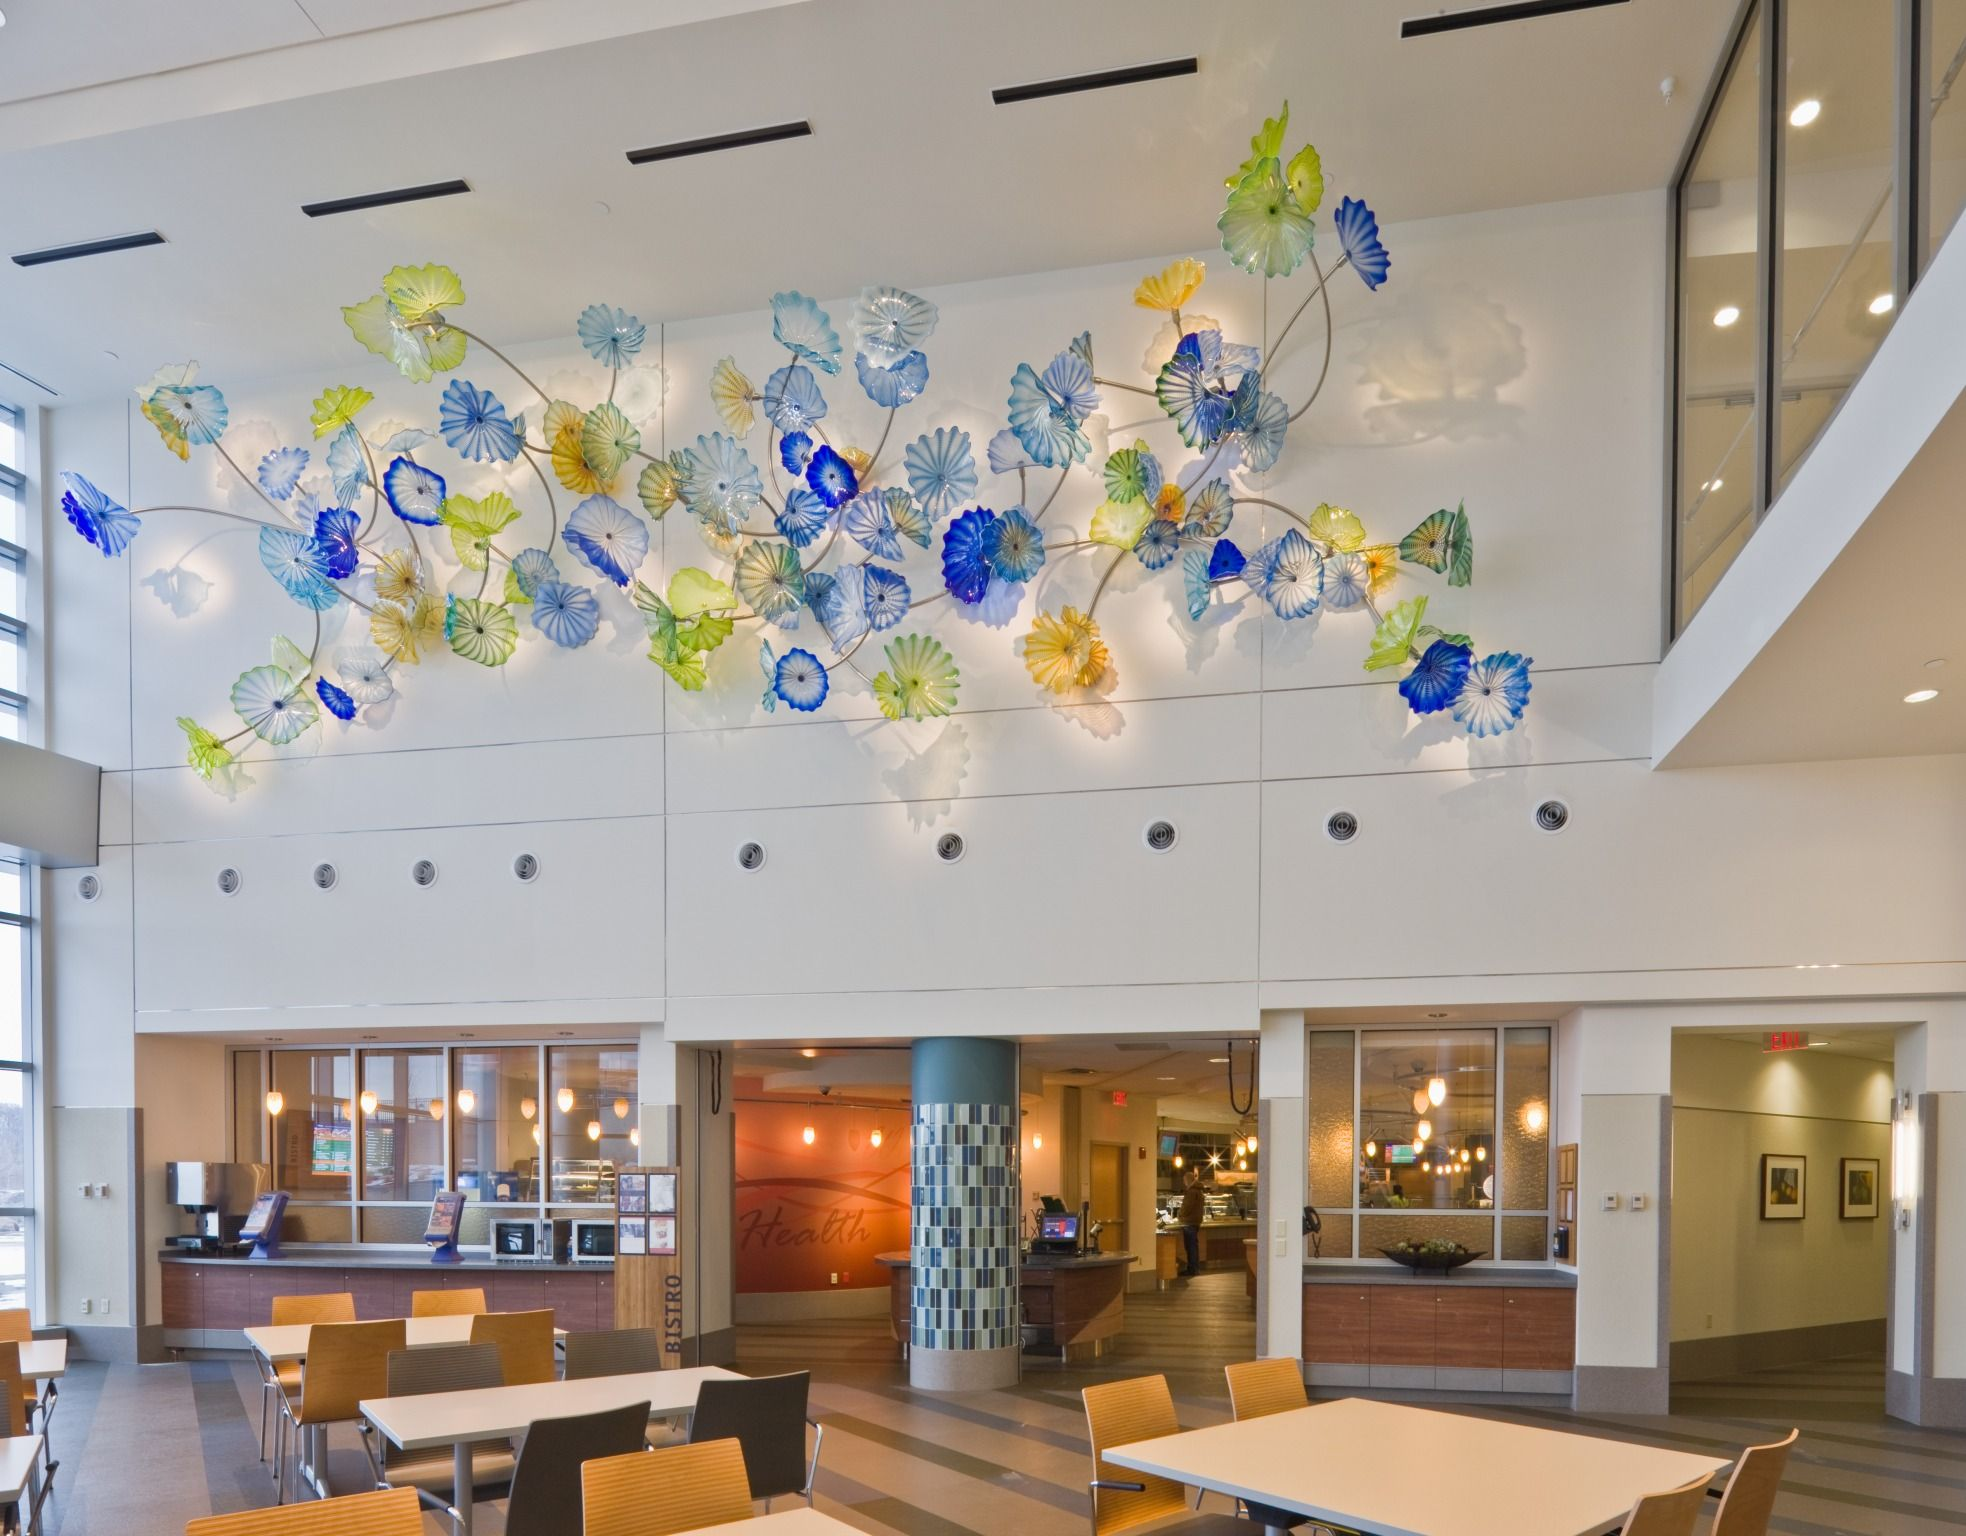 Dale Chihuly - Ahuja Medical Center | Featured Projects-Art